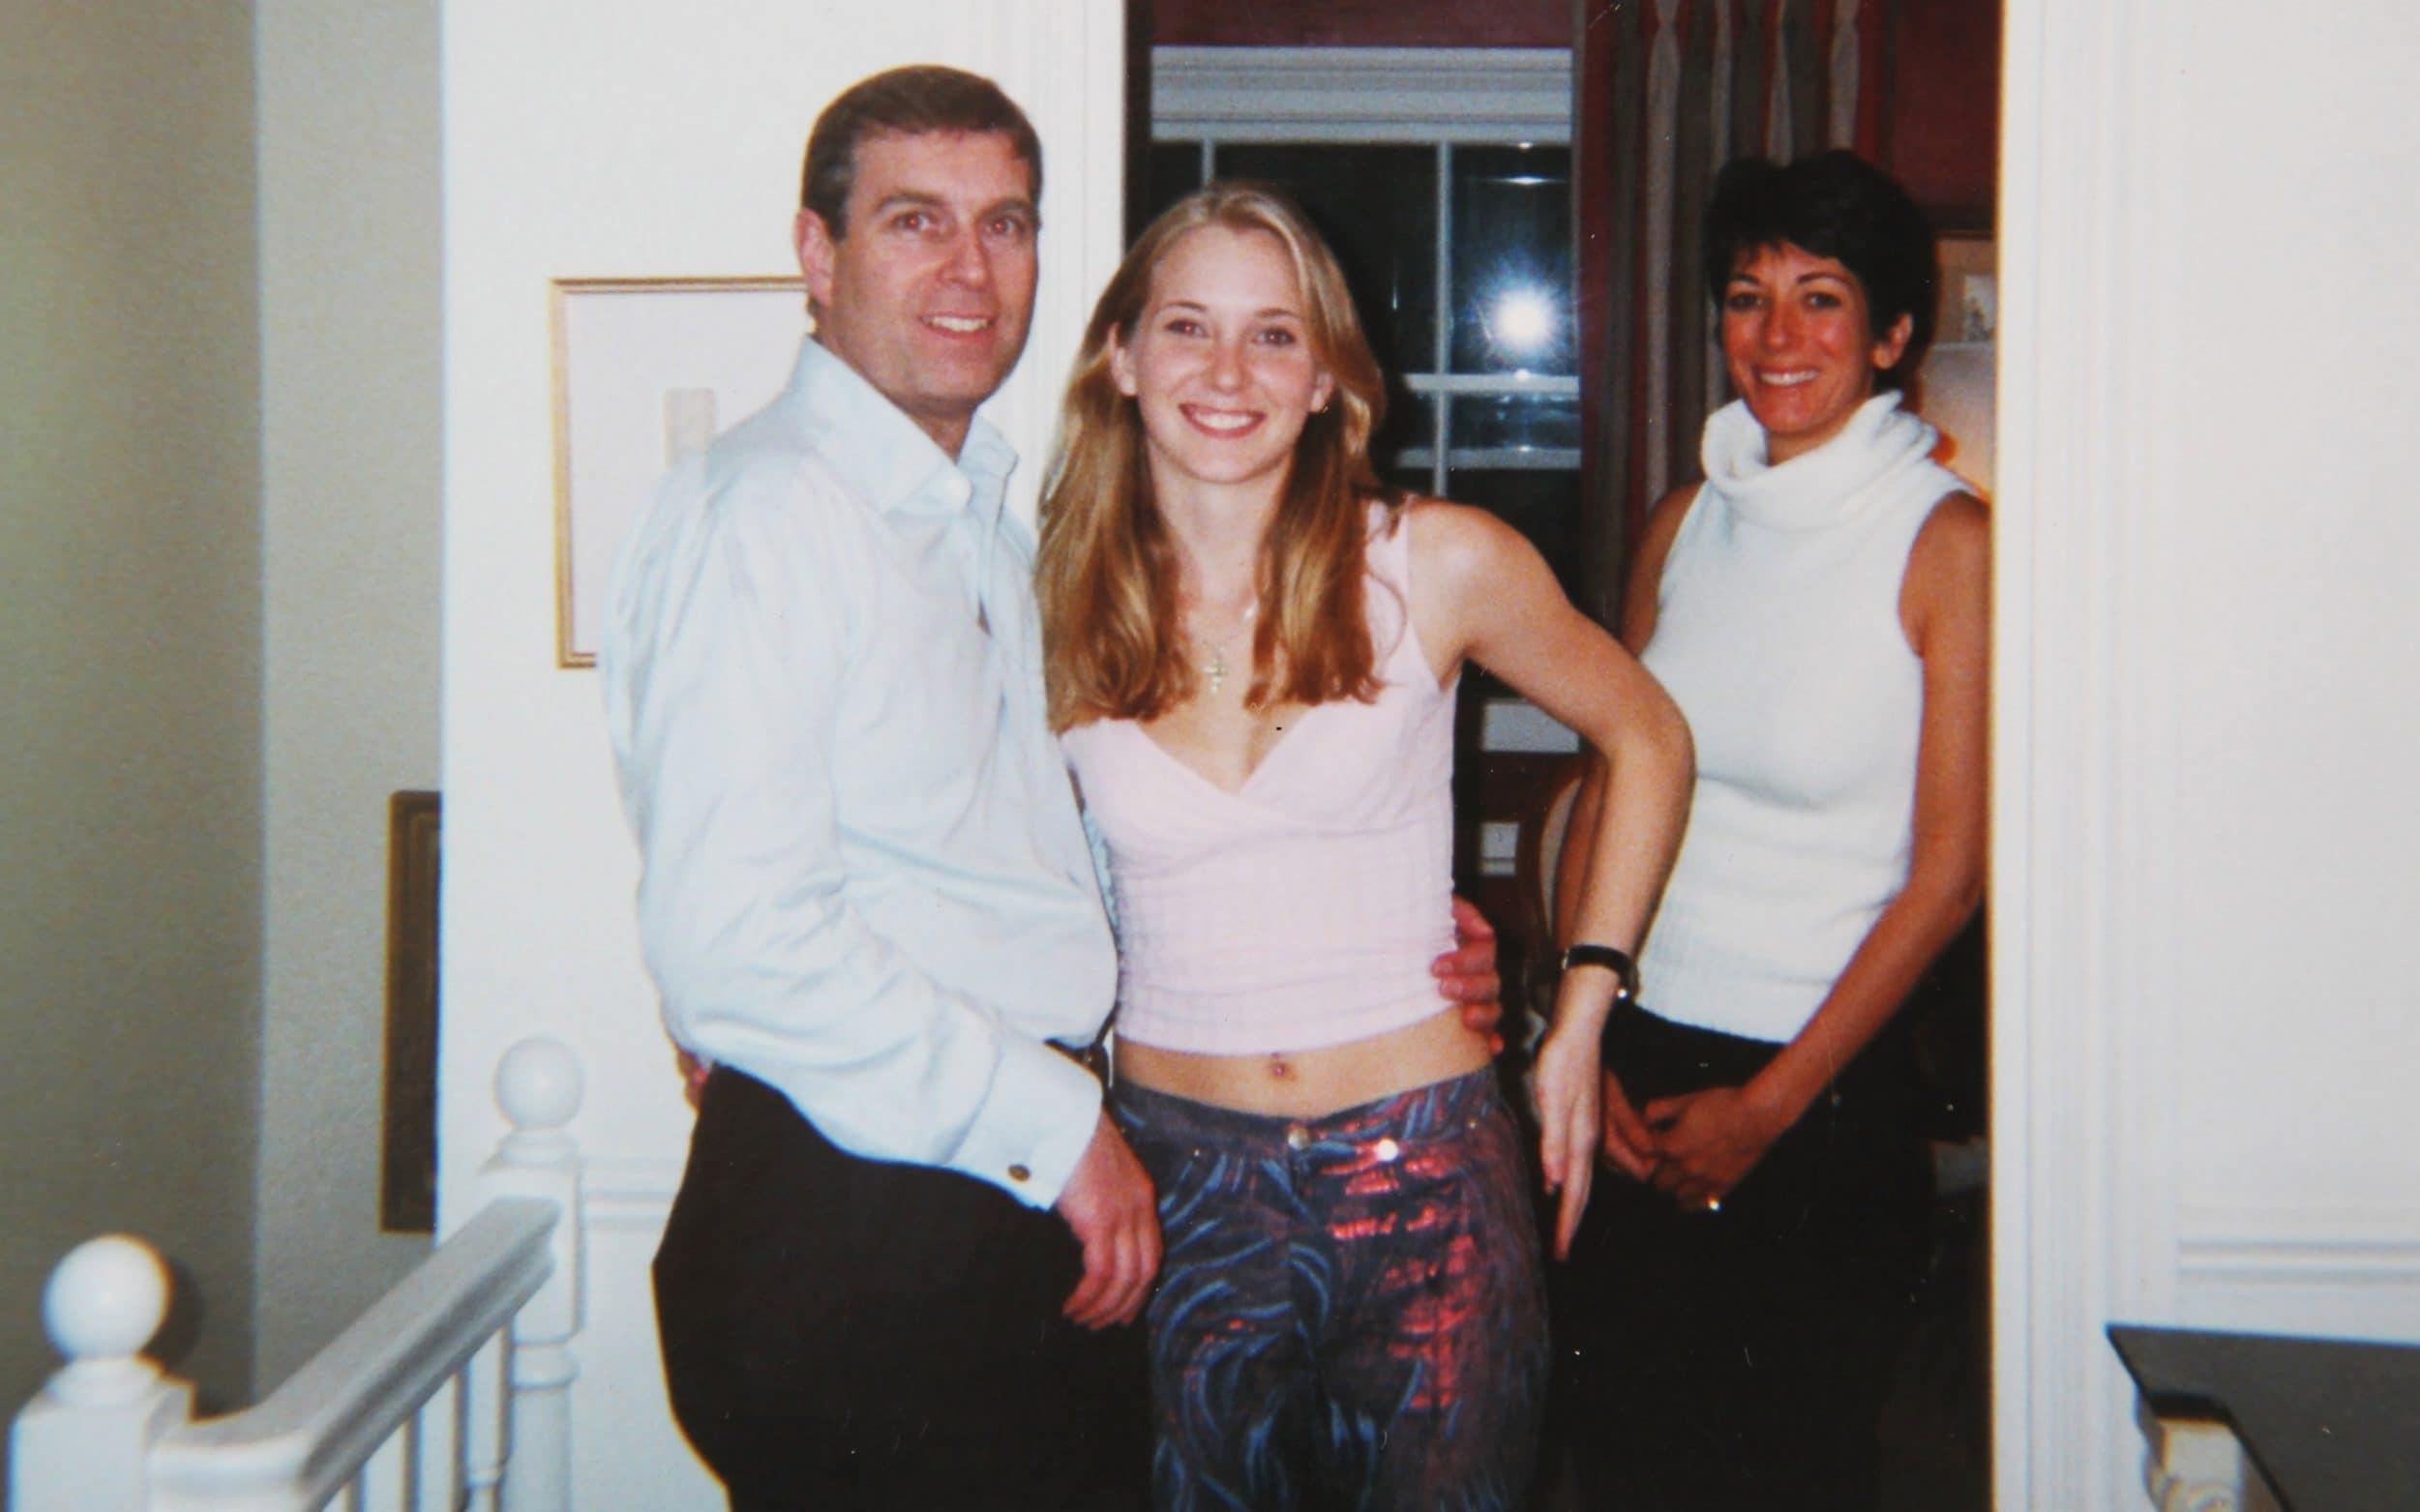 Jeffrey Epstein accuser denies Prince Andrew photo is a fake in letter to the Duke of York